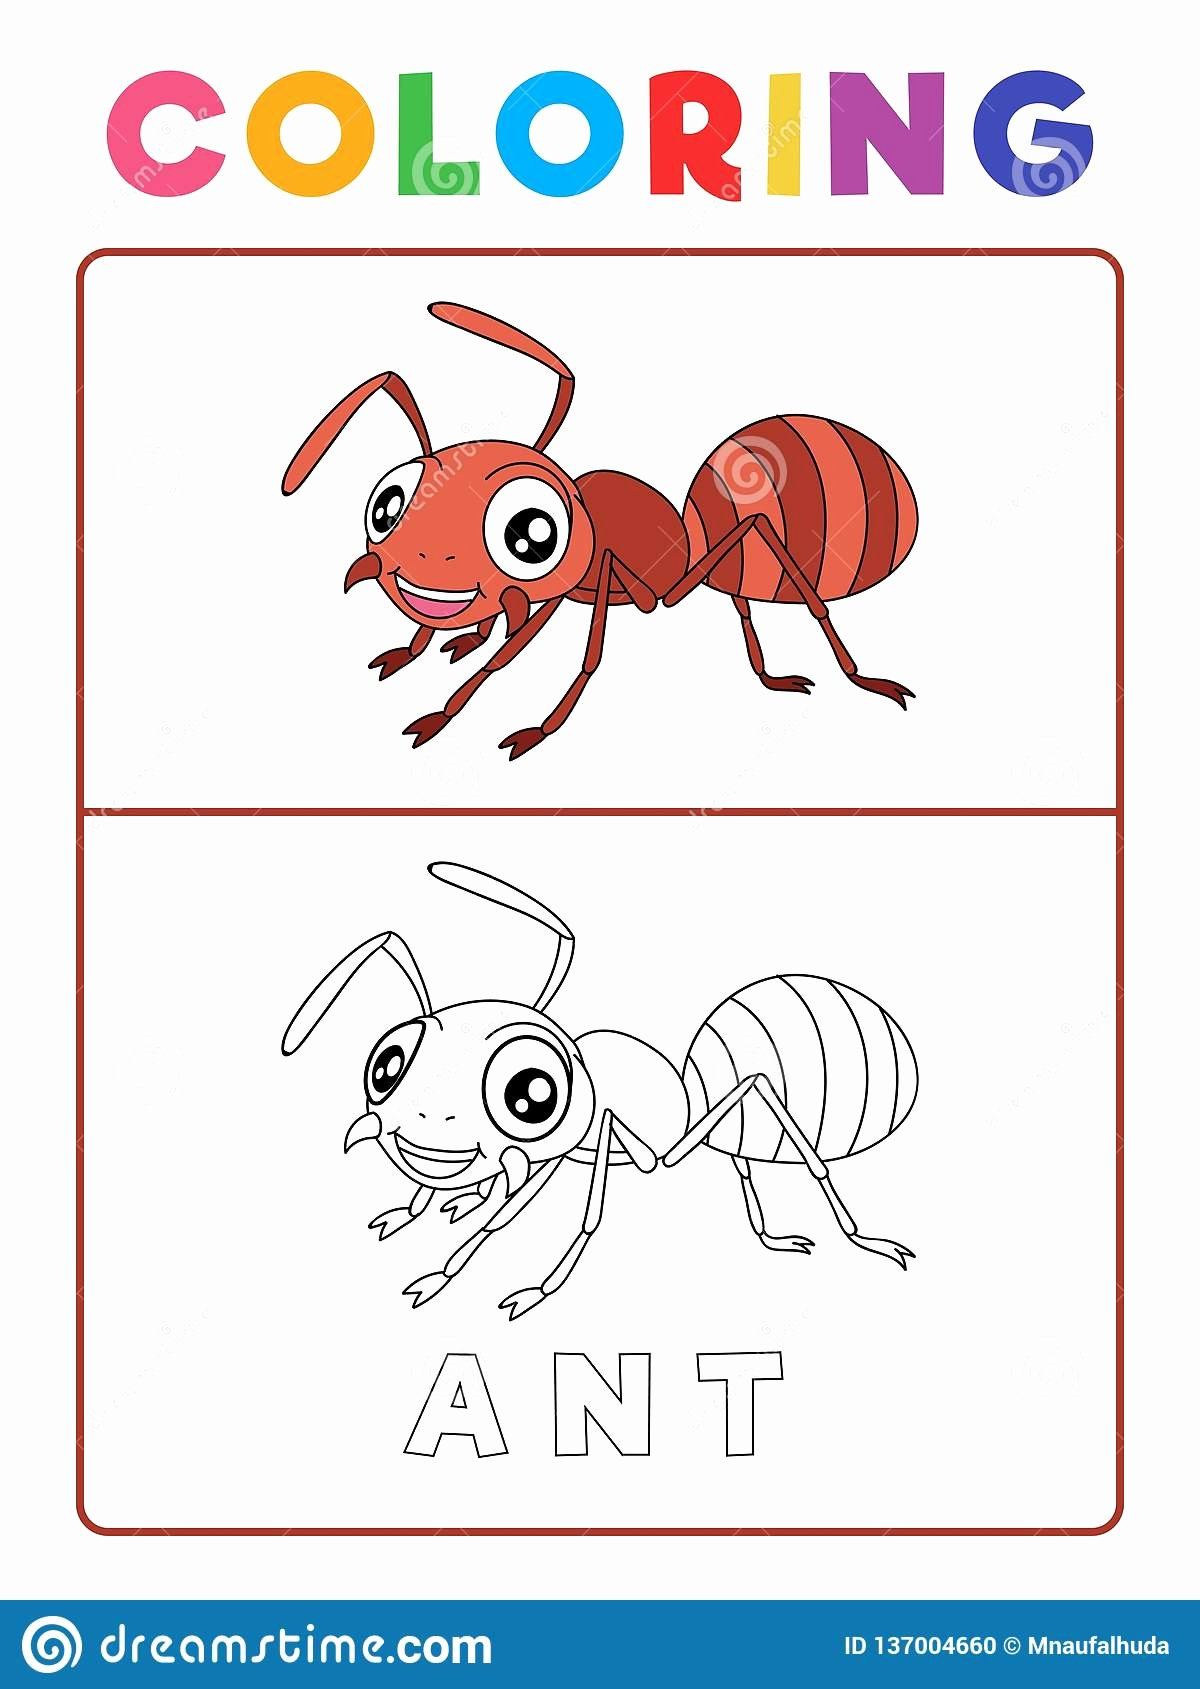 Ant Worksheets for Preschoolers Kids Funny Ant Insect Animal Coloring Book with Example